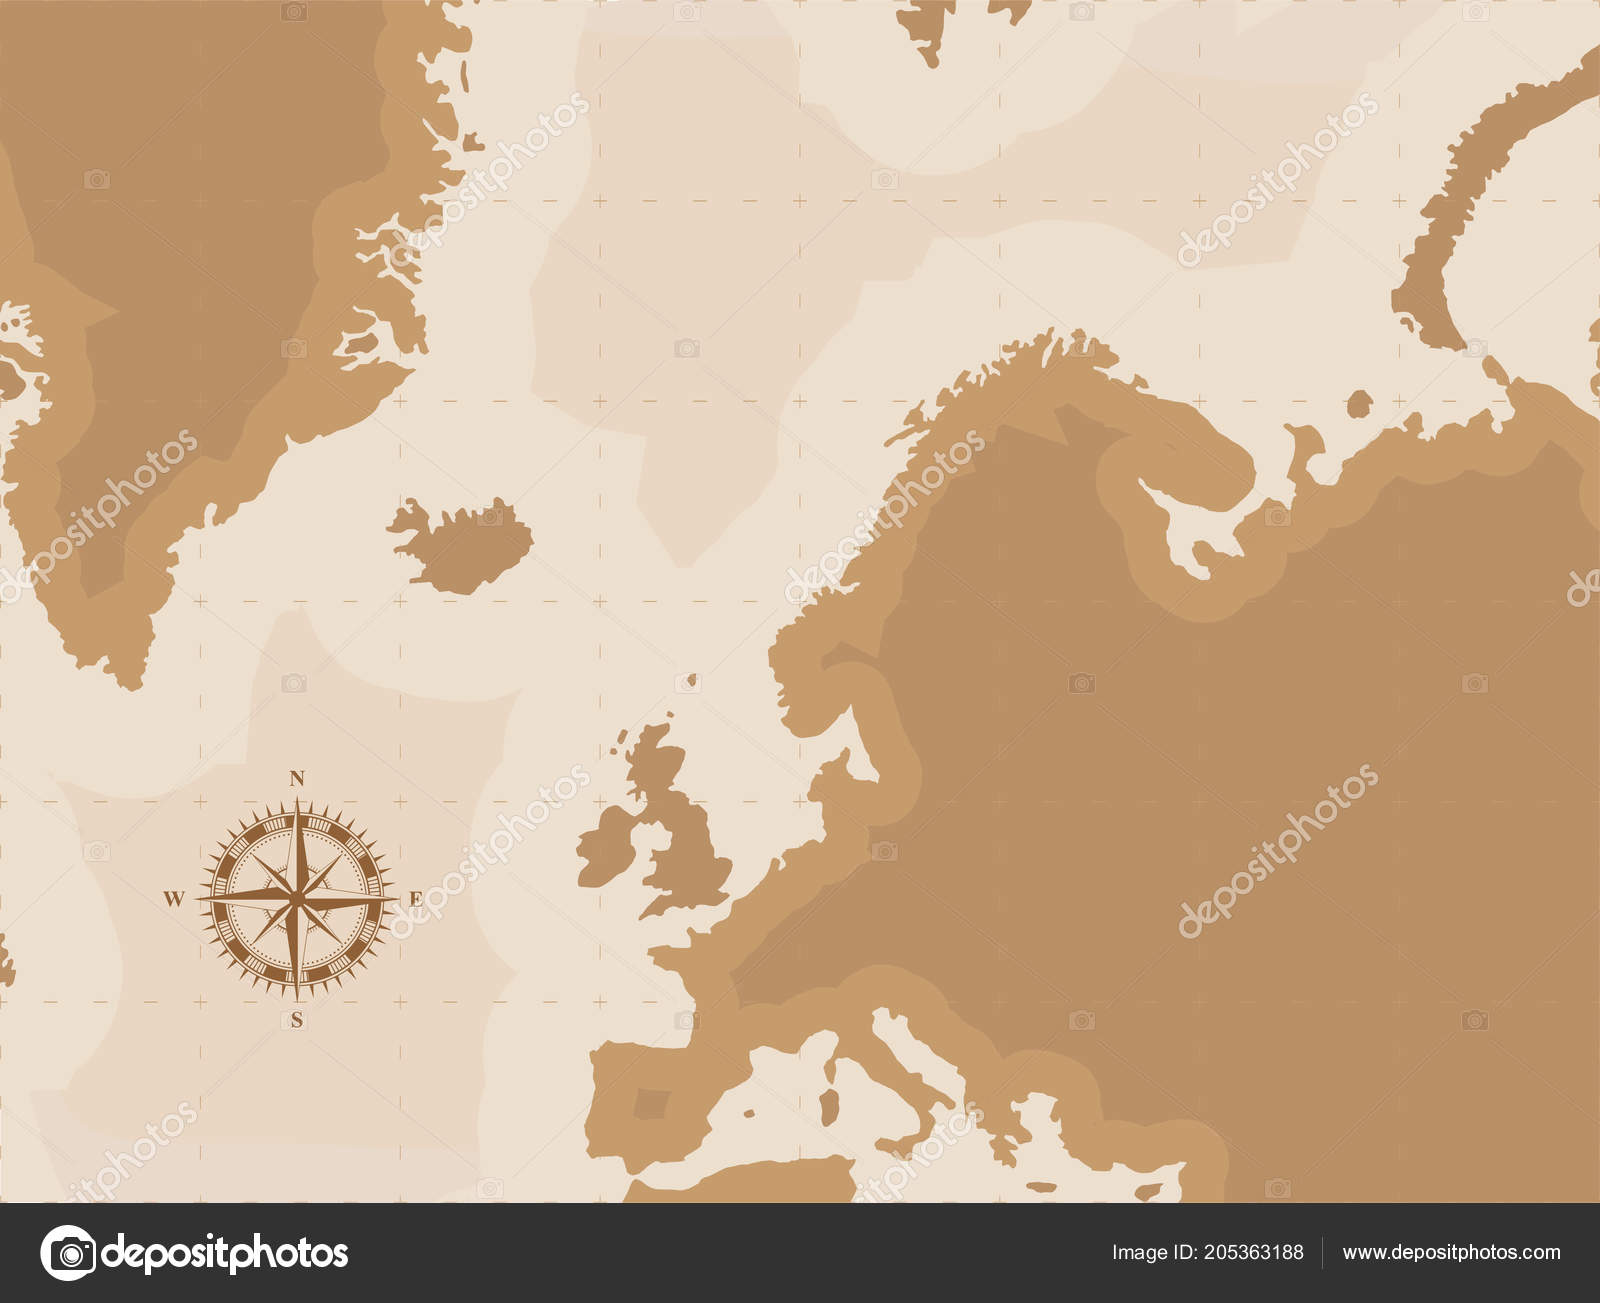 Brown Retro World Map Compass Flat Vector Illustration Eps10 Stock